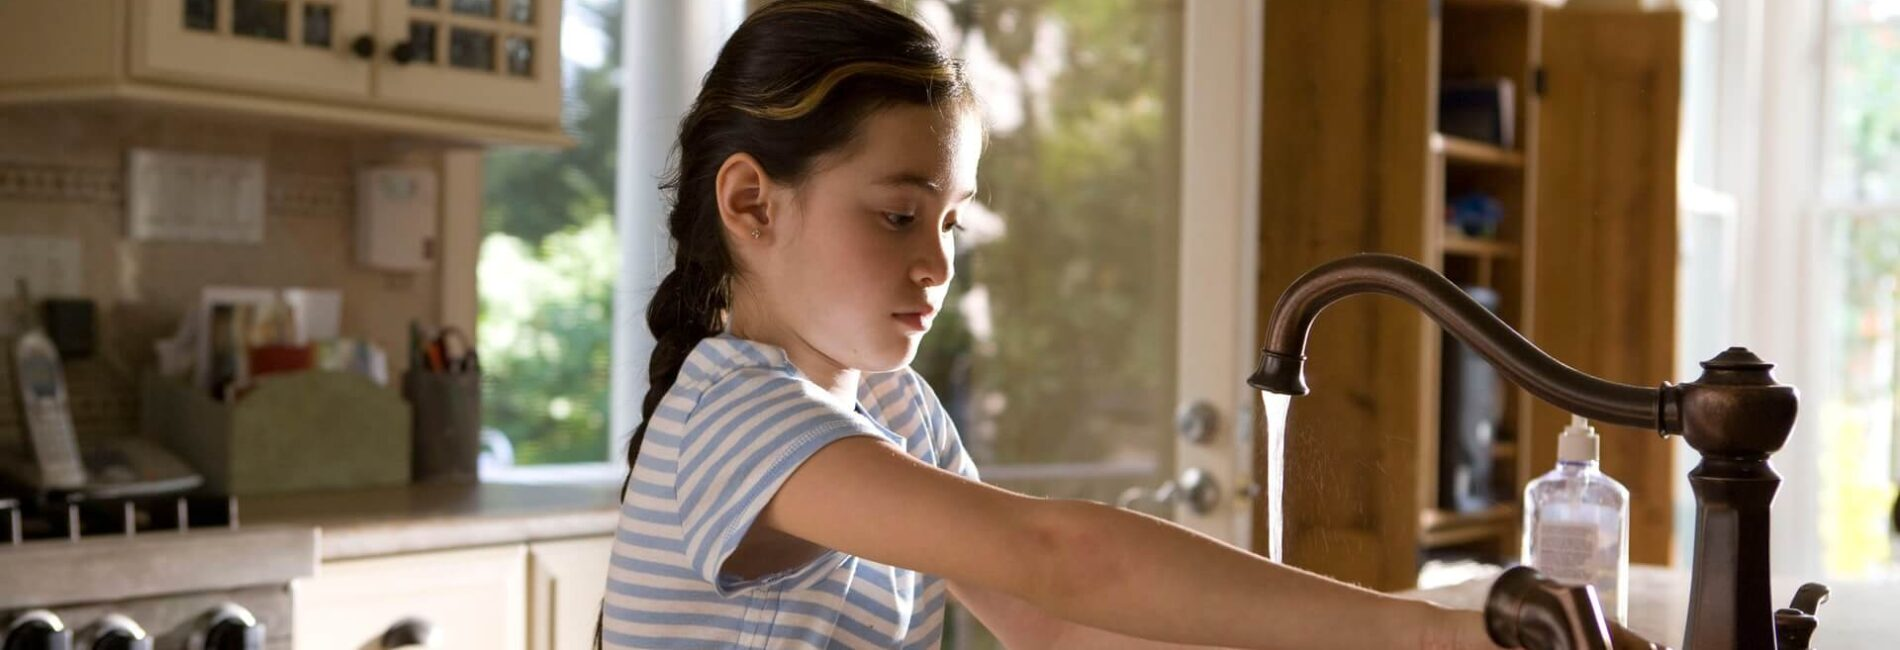 No Time to Clean? 'Wipe-and-a-Promise' Quick Cleaning Tips